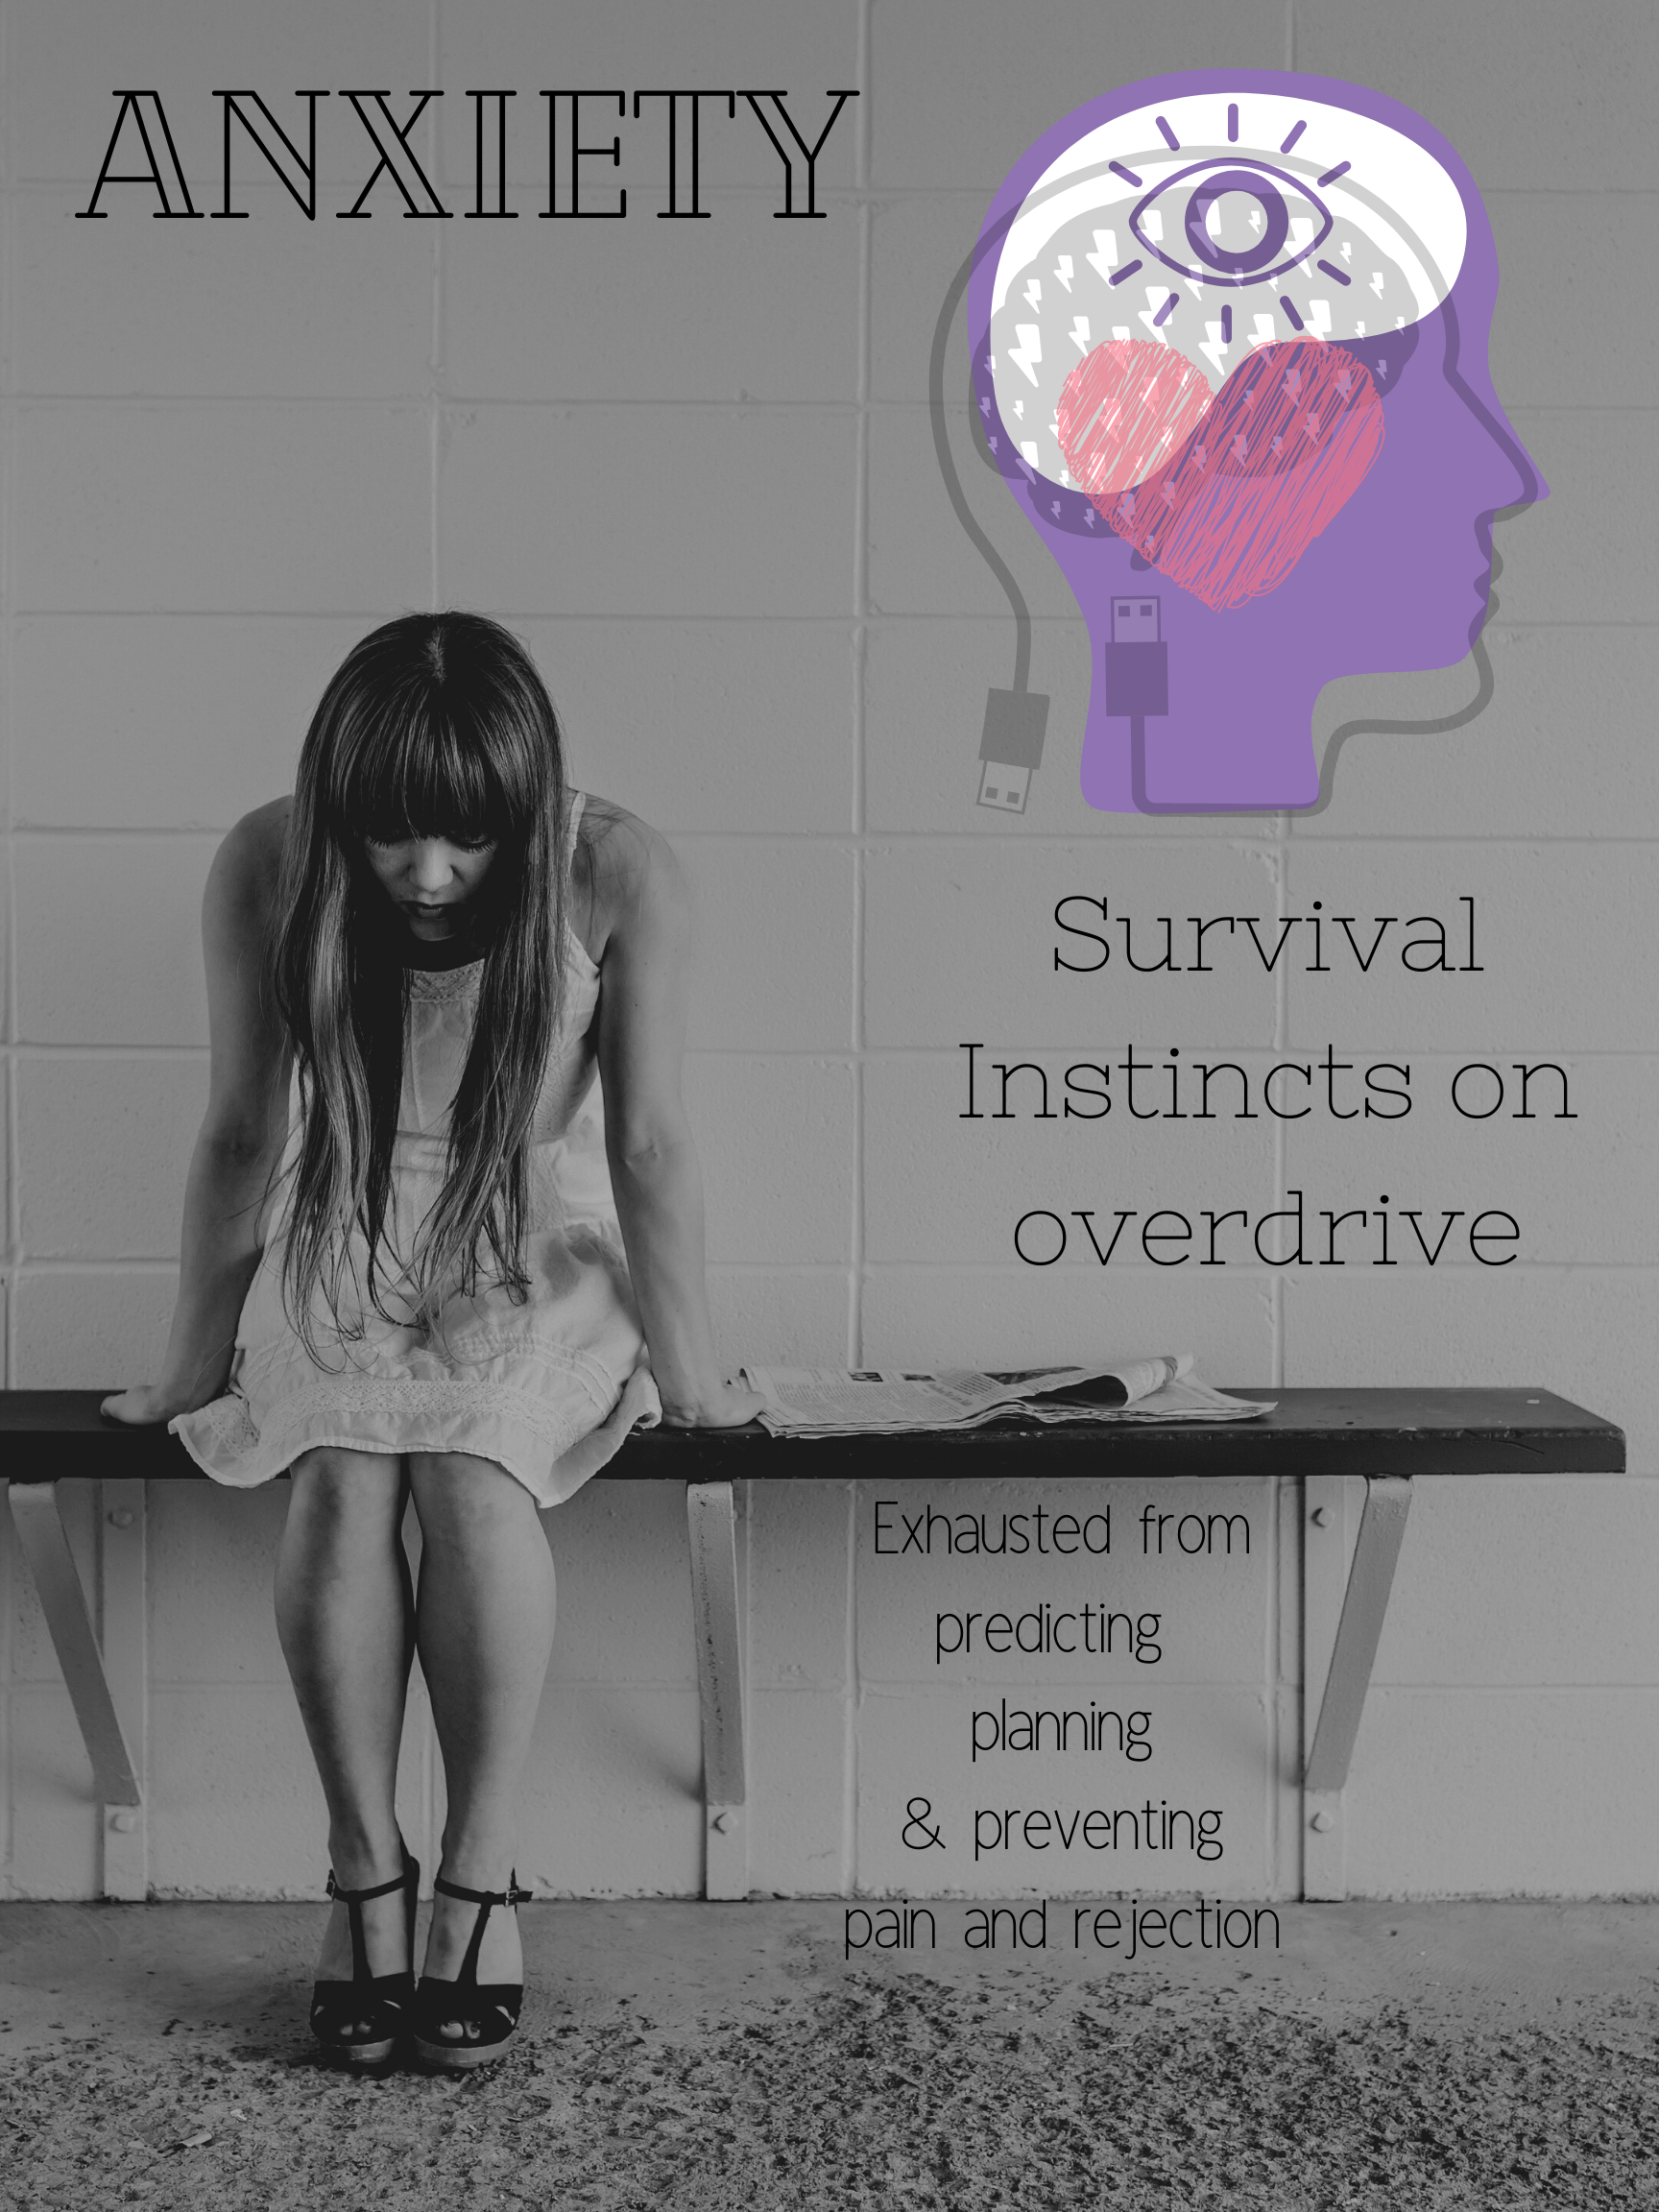 Anxiety means survival instincts on overdrive.